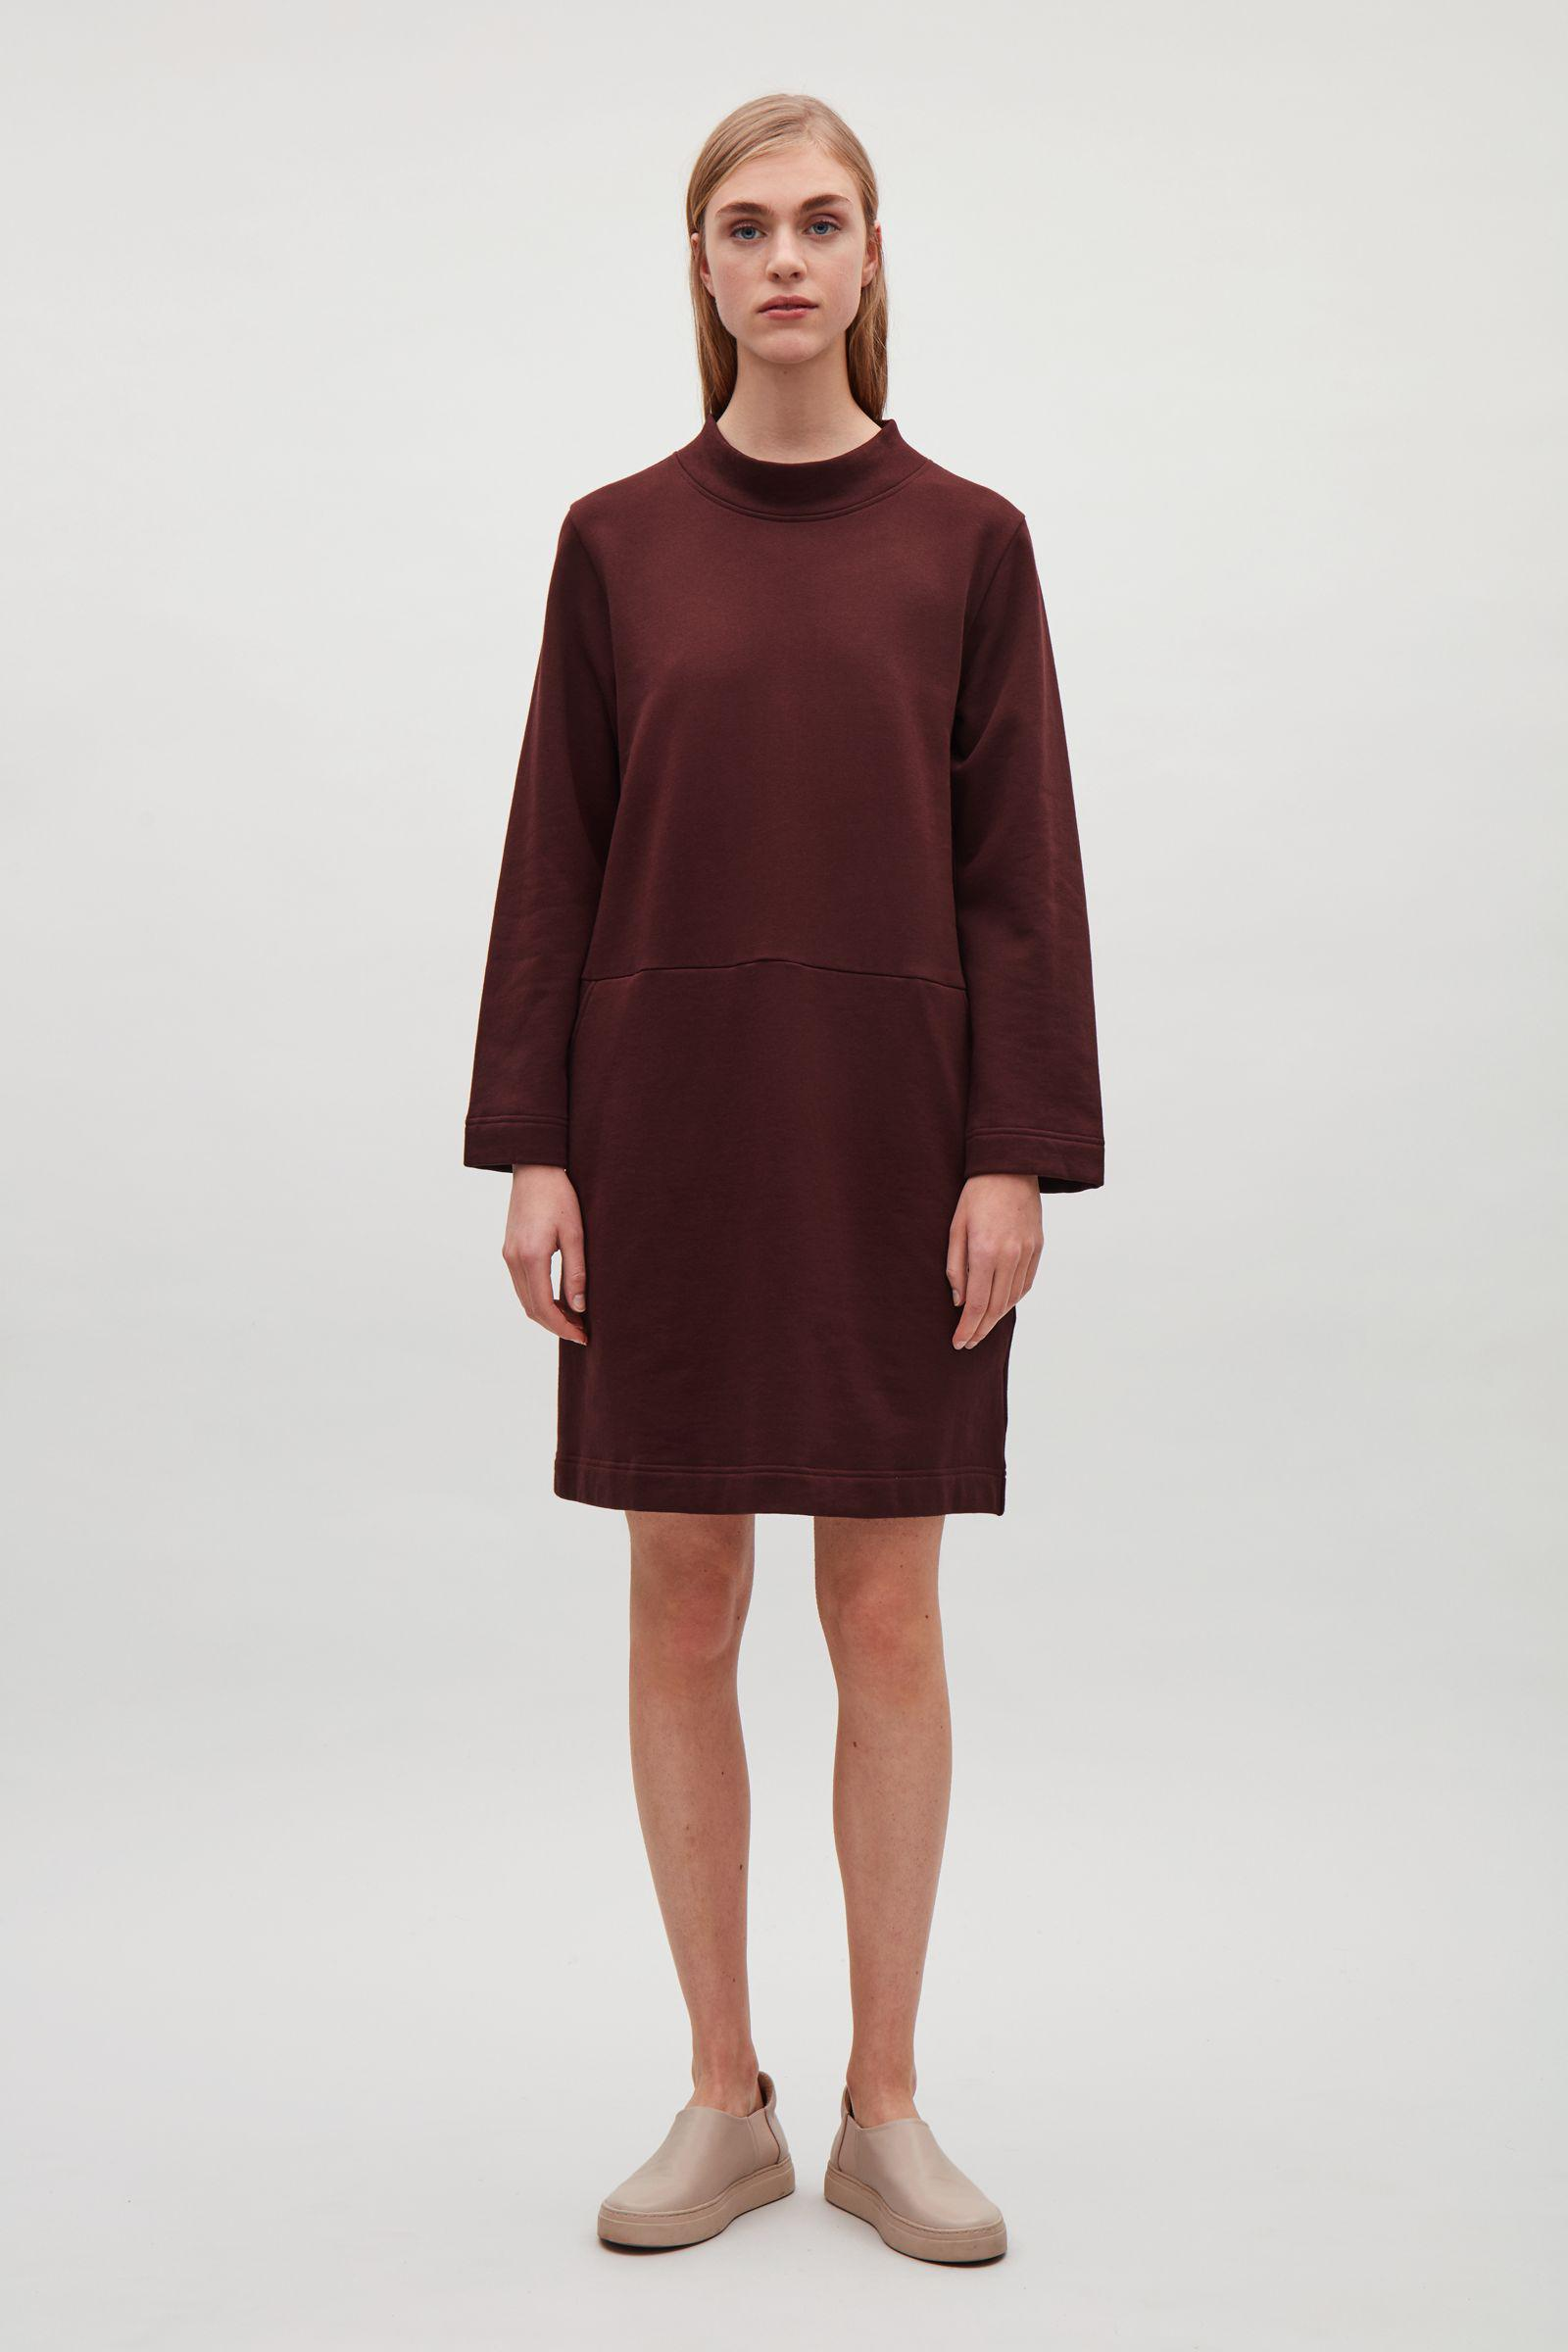 c35c8f80ffd Gallery. Previously sold at  COS · Women s Jumper Dresses